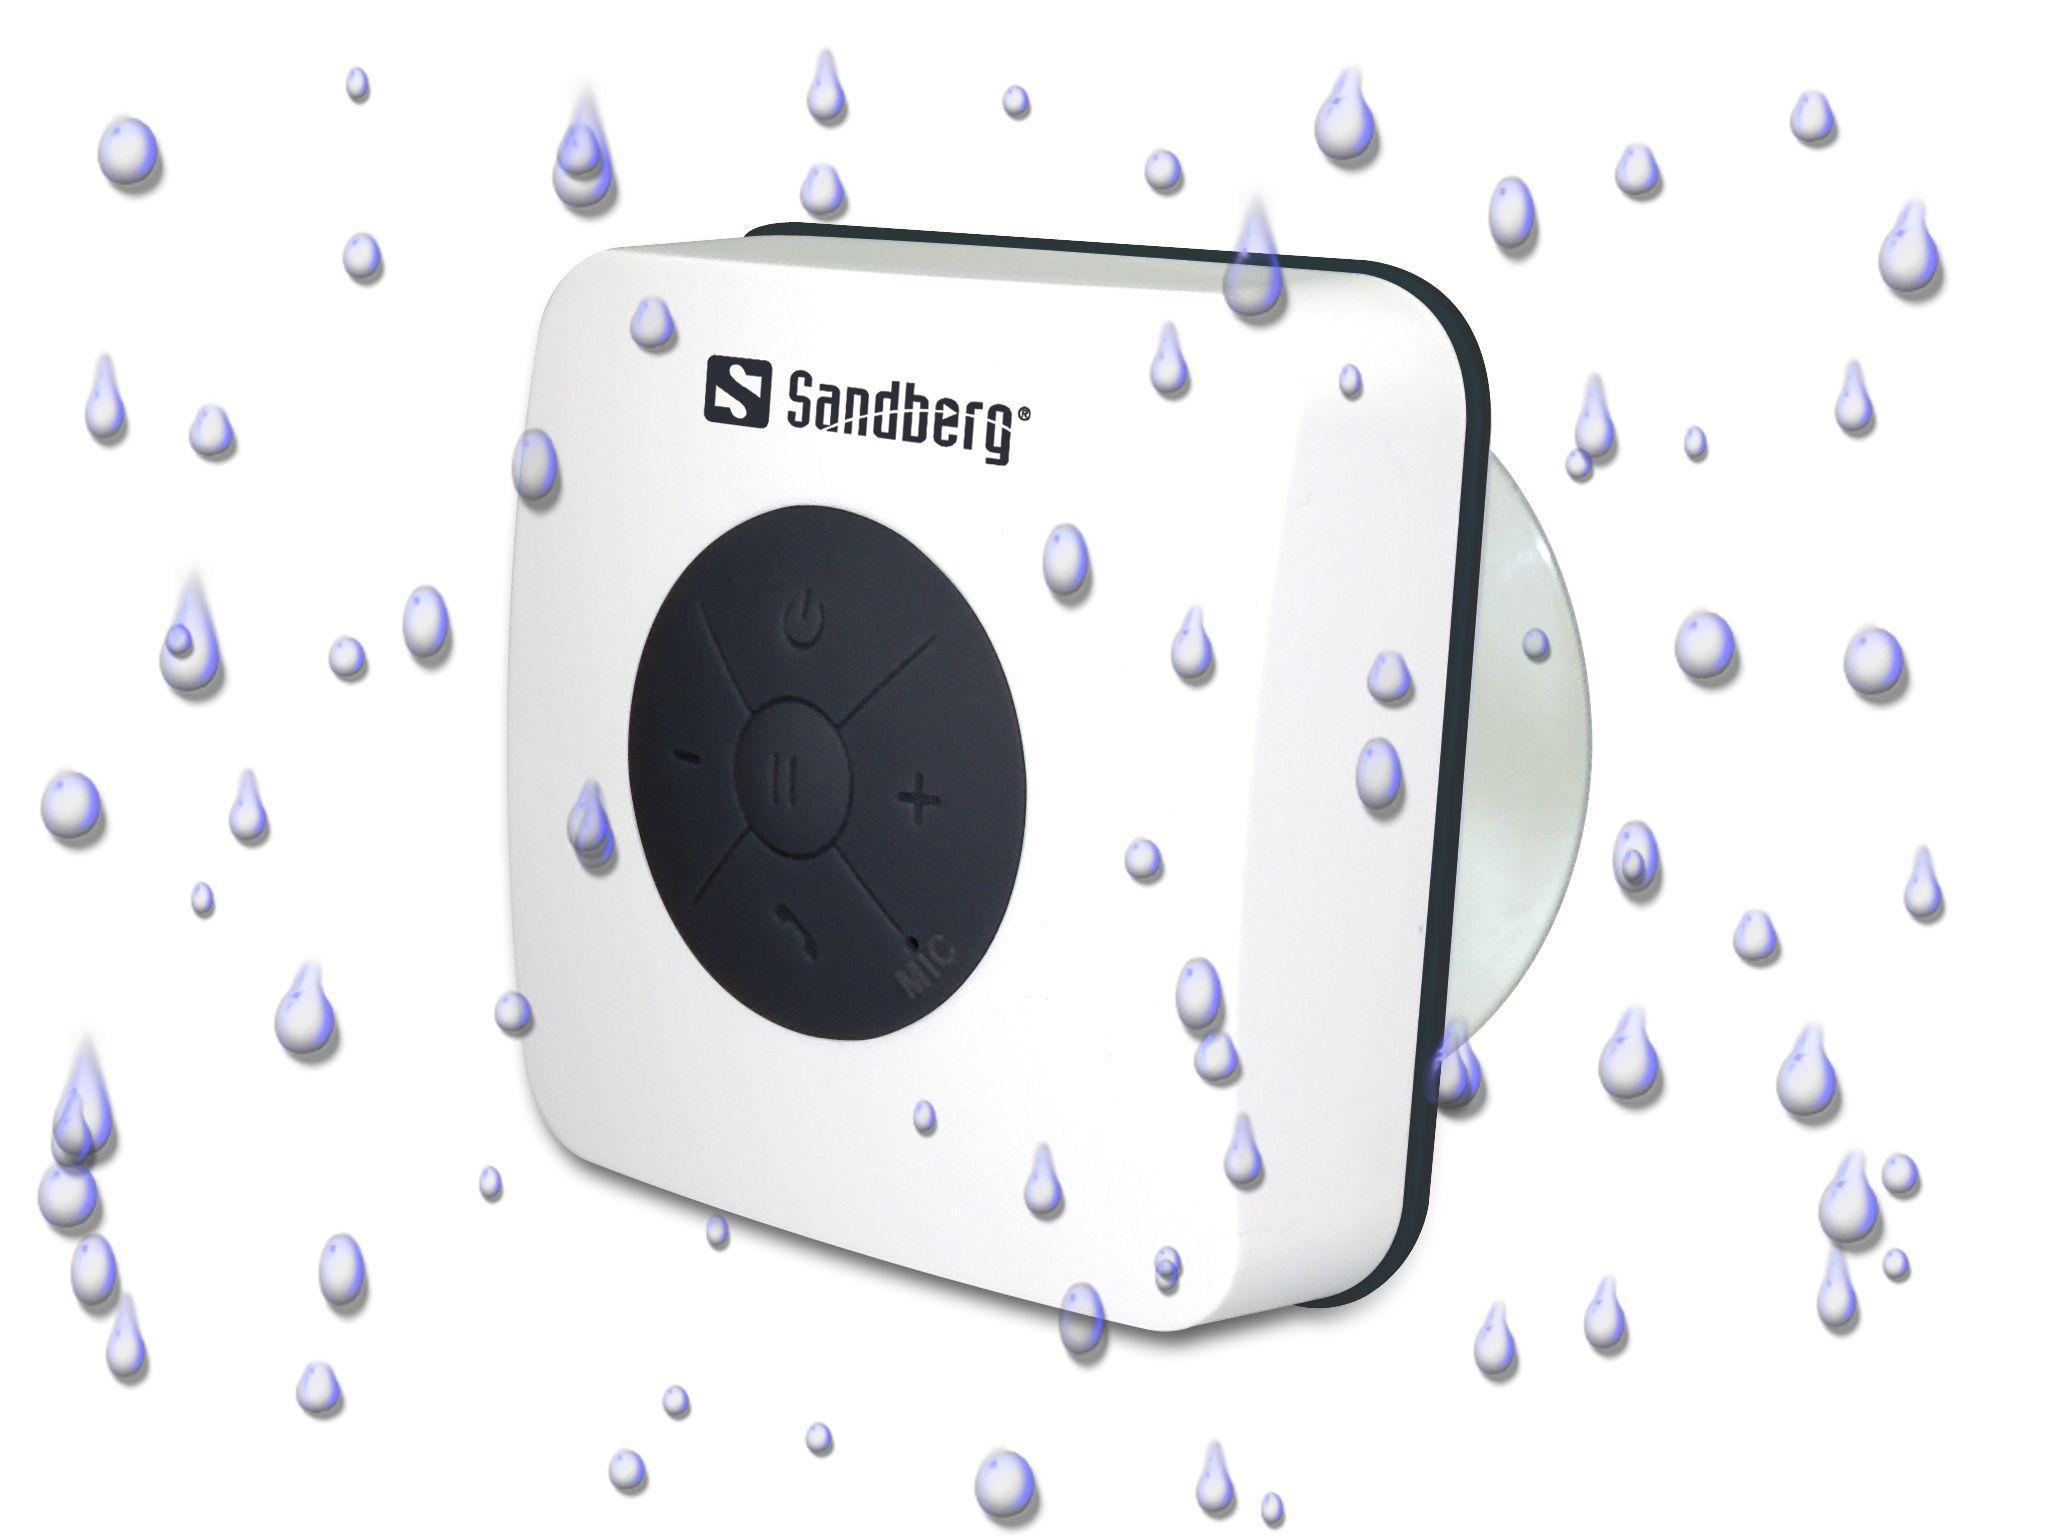 Sandberg Shower Bluetooth Speaker is a smart splashproof Bluetooth speaker designed for shower mount by means of a powerful suction disc. Enjoy the music from your mobile phone wirelessly while you are taking a shower - or remove the suction disc and bring the speaker wherever you want..